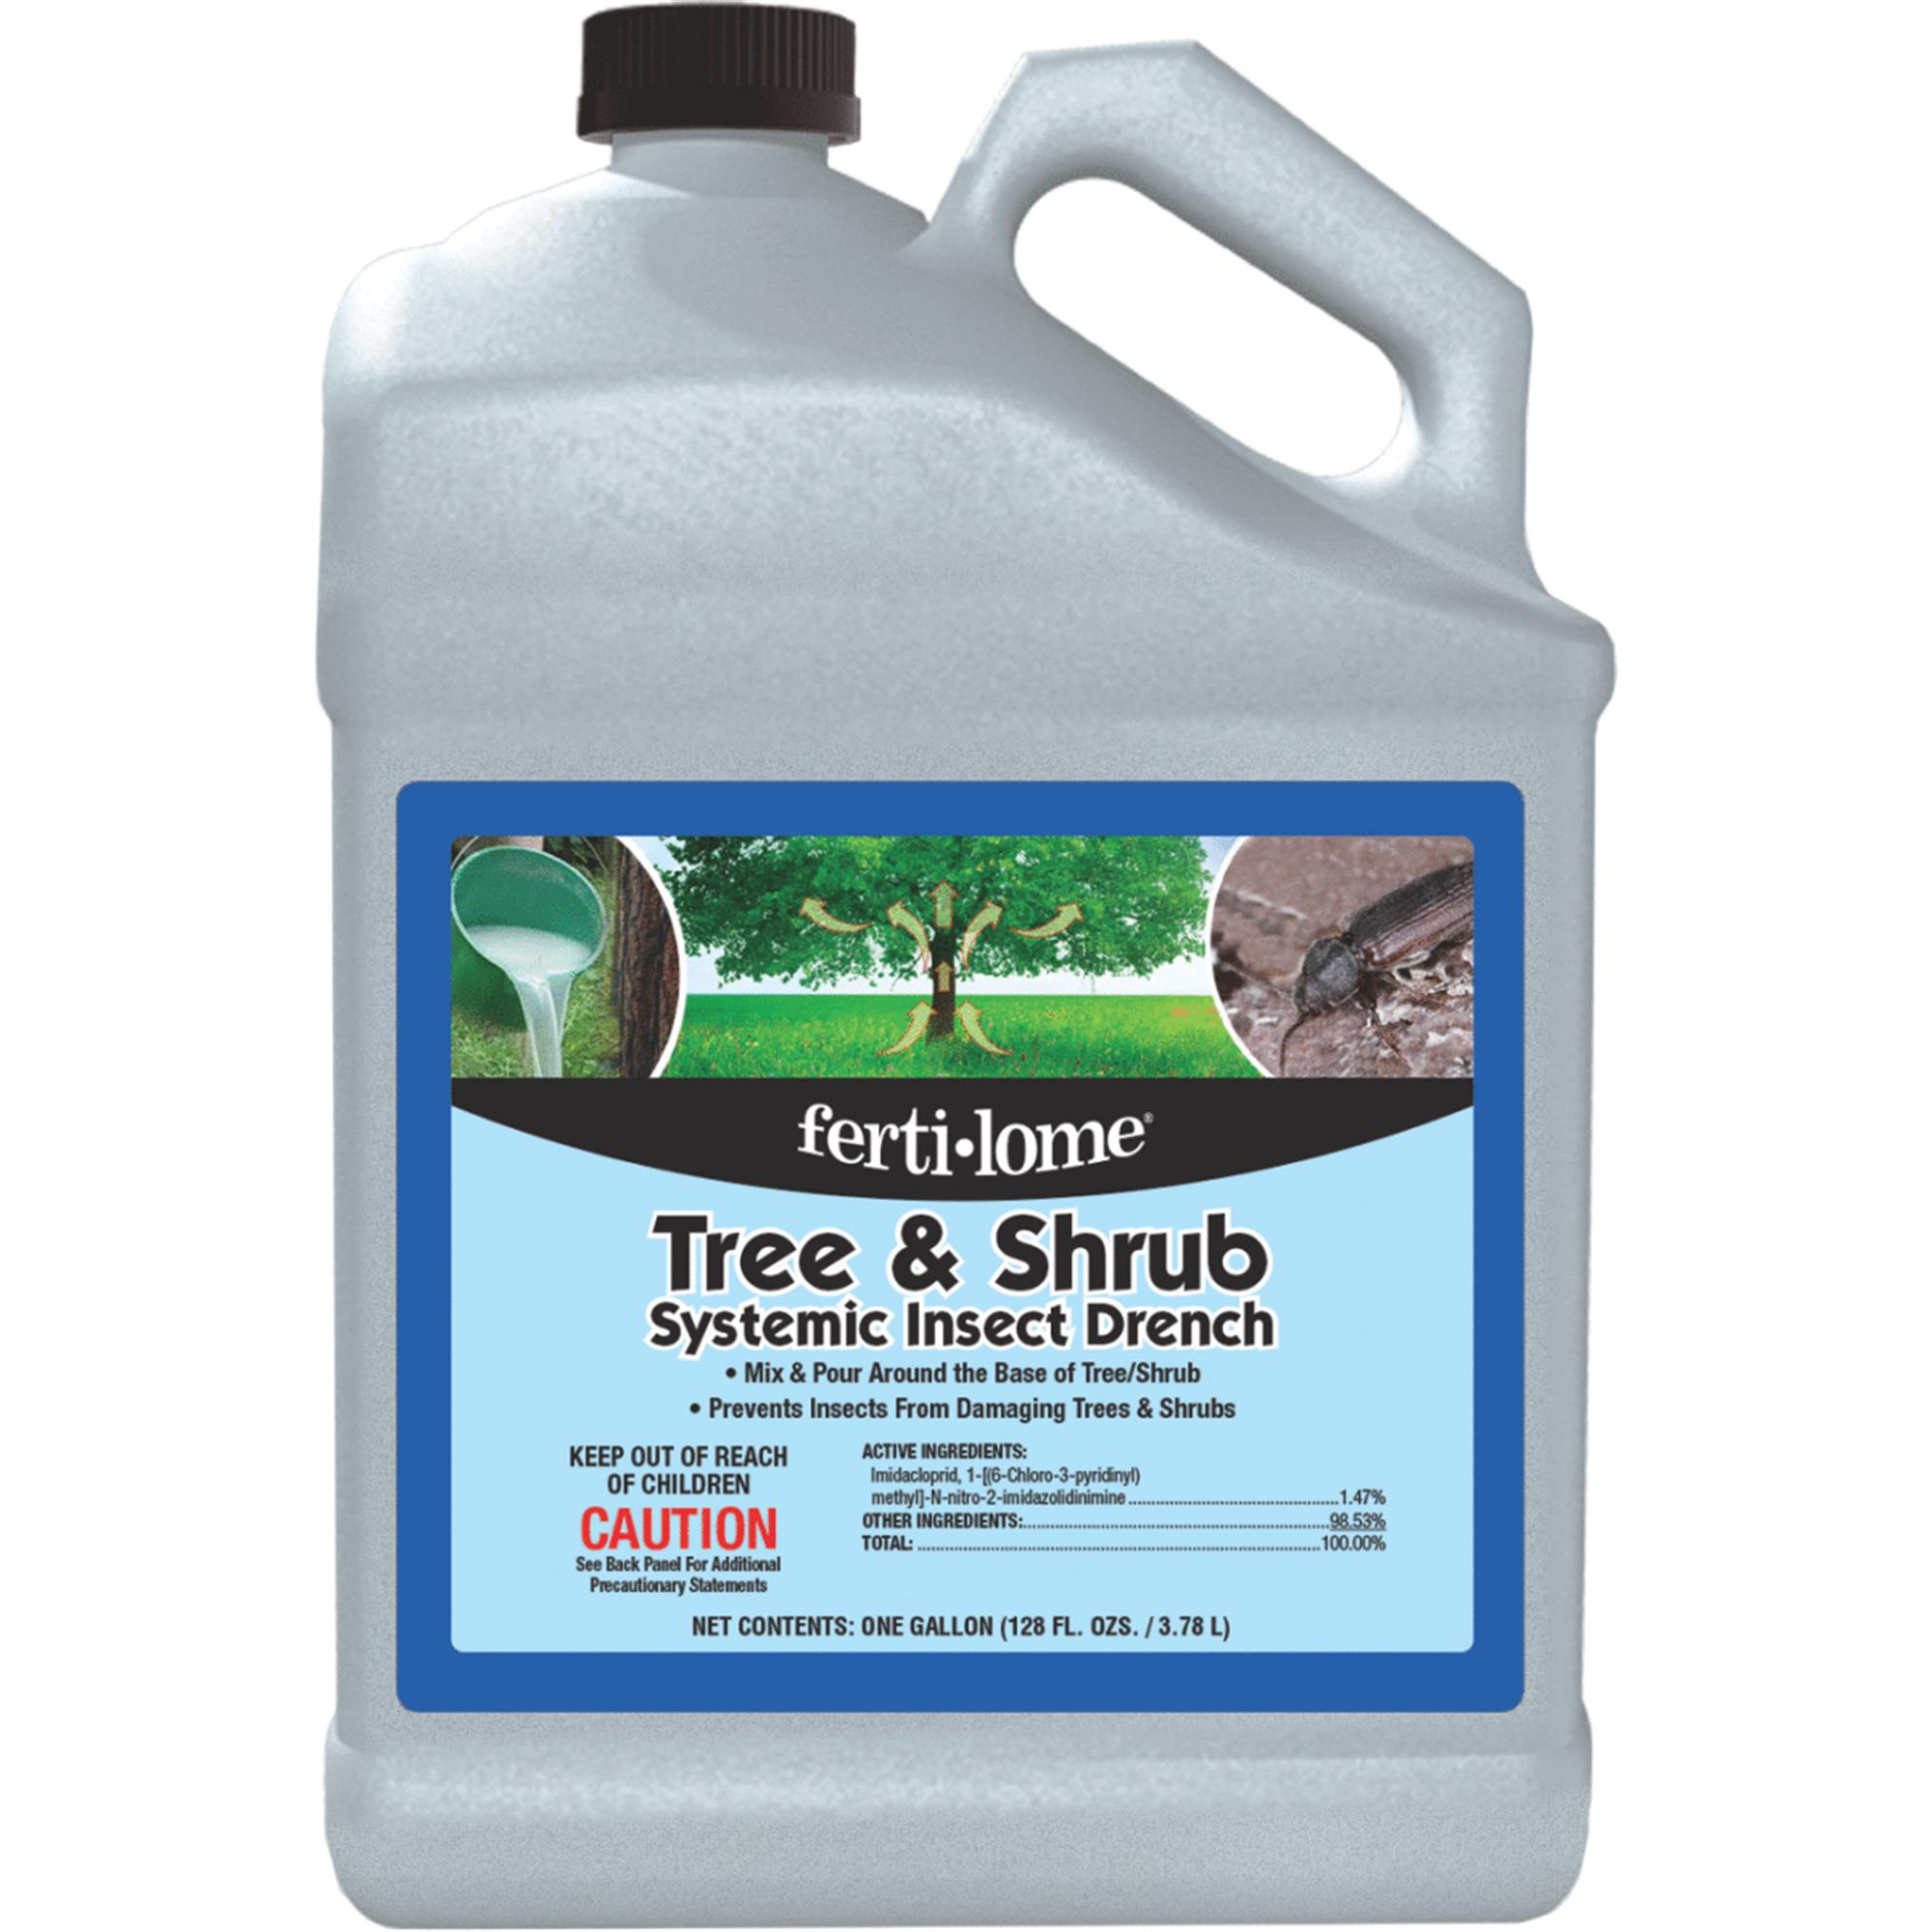 Ferti-lome Tree & Shrub Insect Killer